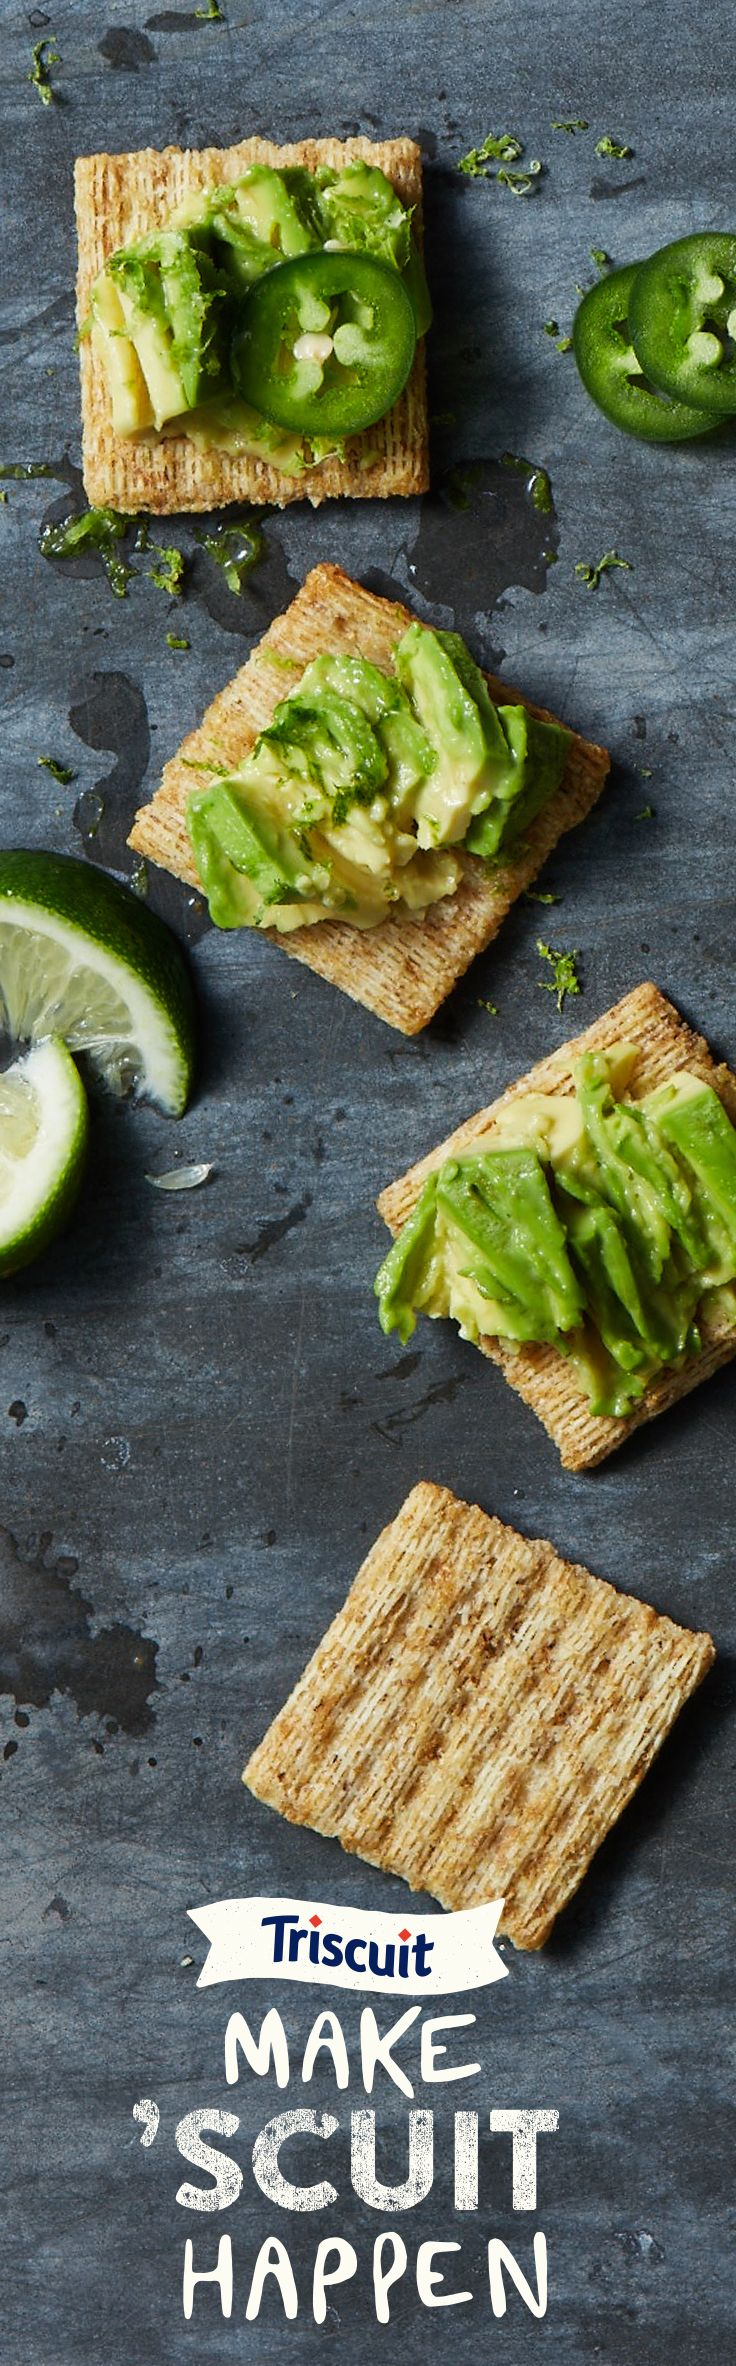 It doesn't take much to take snacking up a notch. Start with avocado, add sliced jalapeno, and top it off with a splash of lime. That's how you Make 'Scuit Happen.